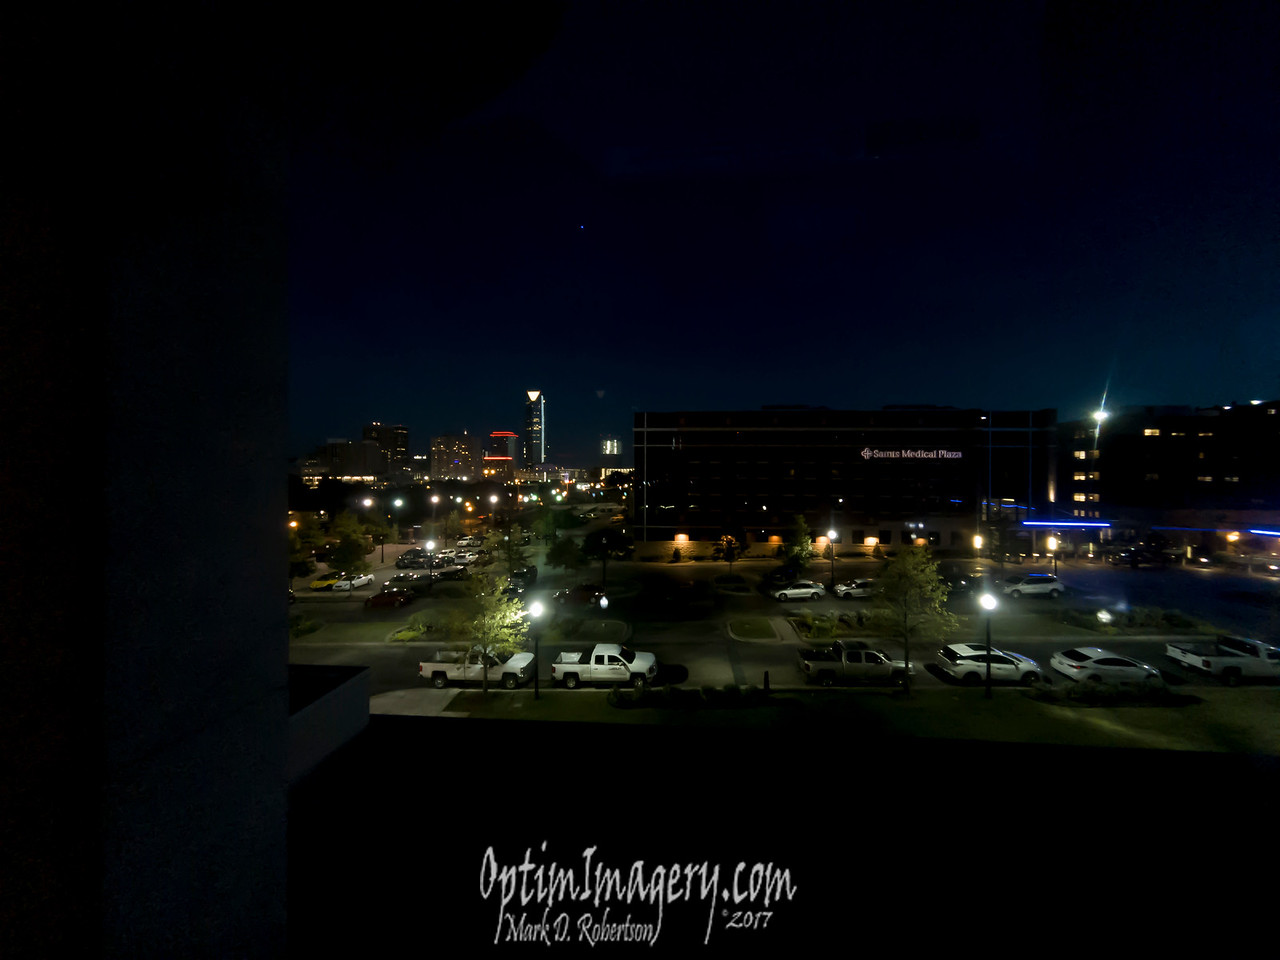 NIGHT VIEW OF OKLAHOMA CITY FROM DAD'S ROOM